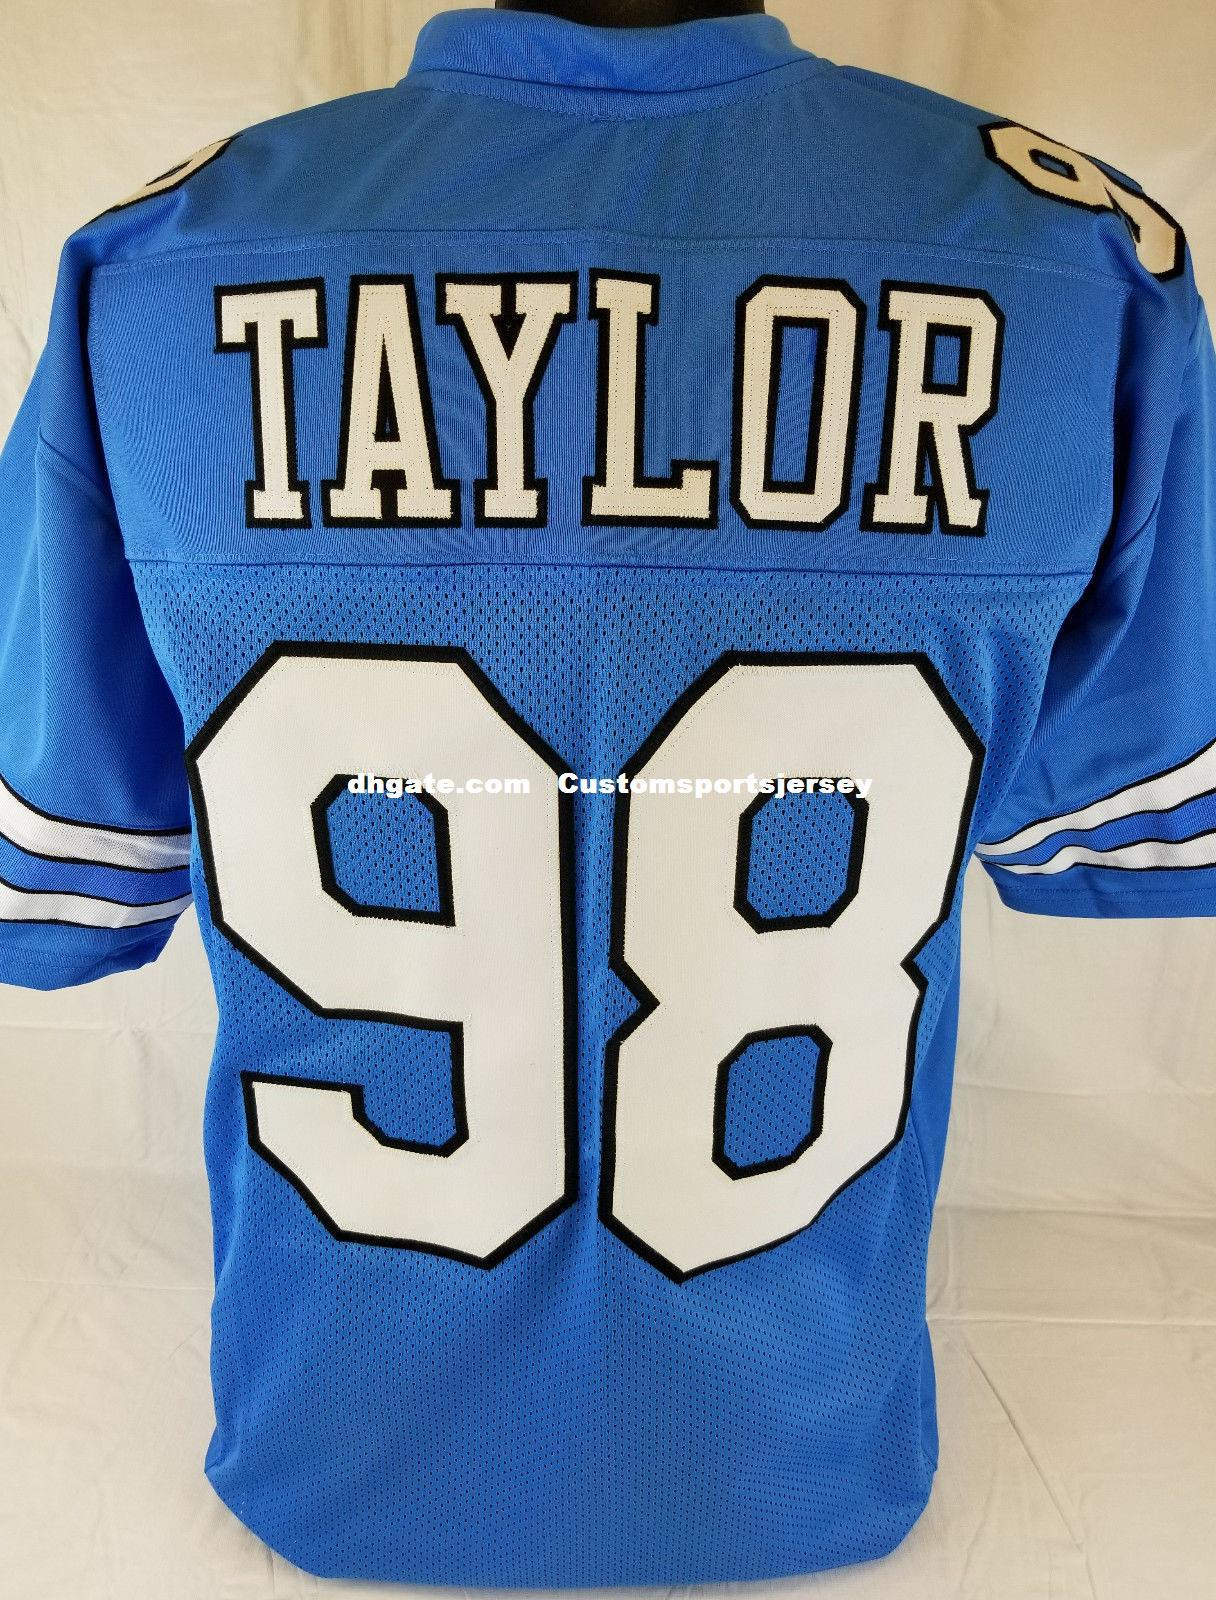 e7c0e9953c0 2019 Cheap Custom Lawrence Taylor Blue College Style Football Jersey  Customized Any Name Number Stitched Jersey XS 5XL From Customsportsjersey